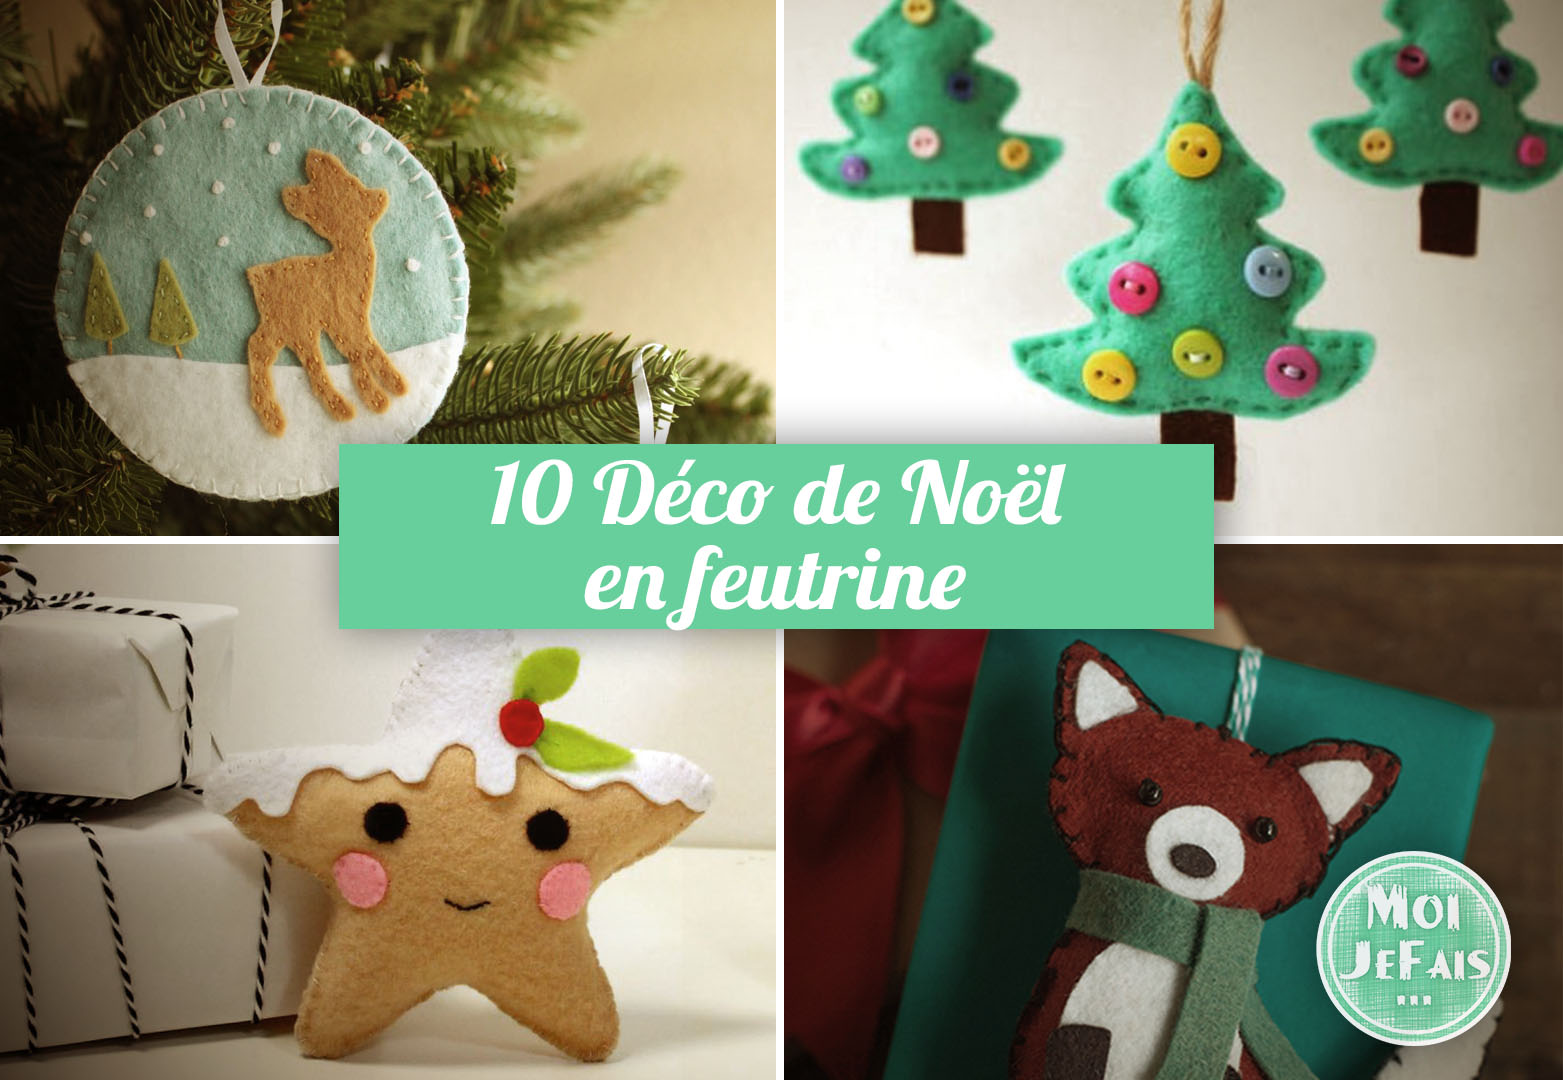 decoration noel feutrine